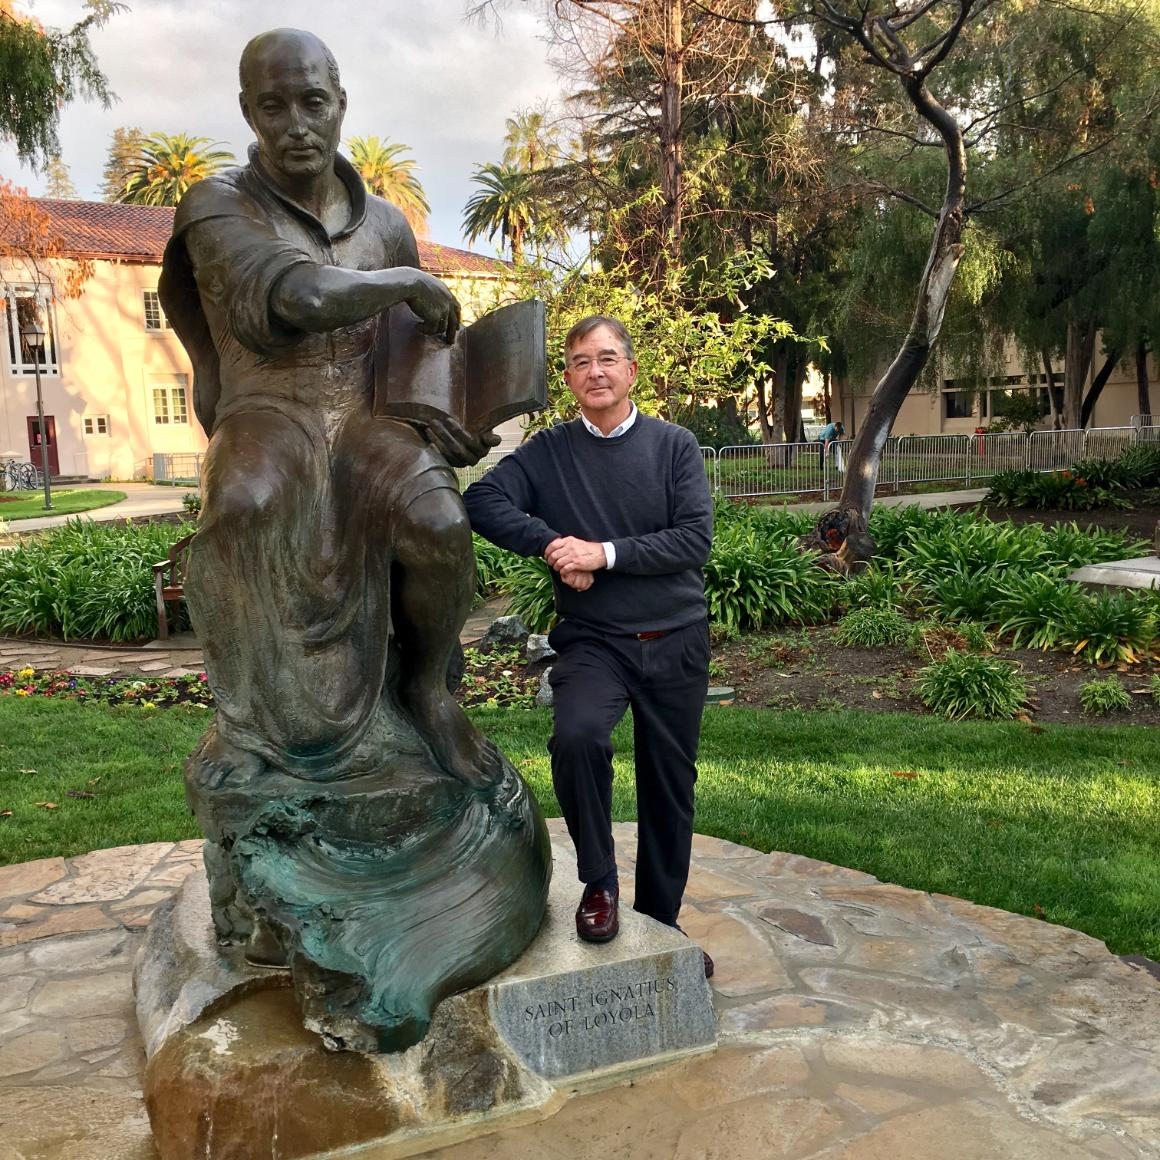 Lanny Vincent with SCU's statue of St. Ignatius image link to story